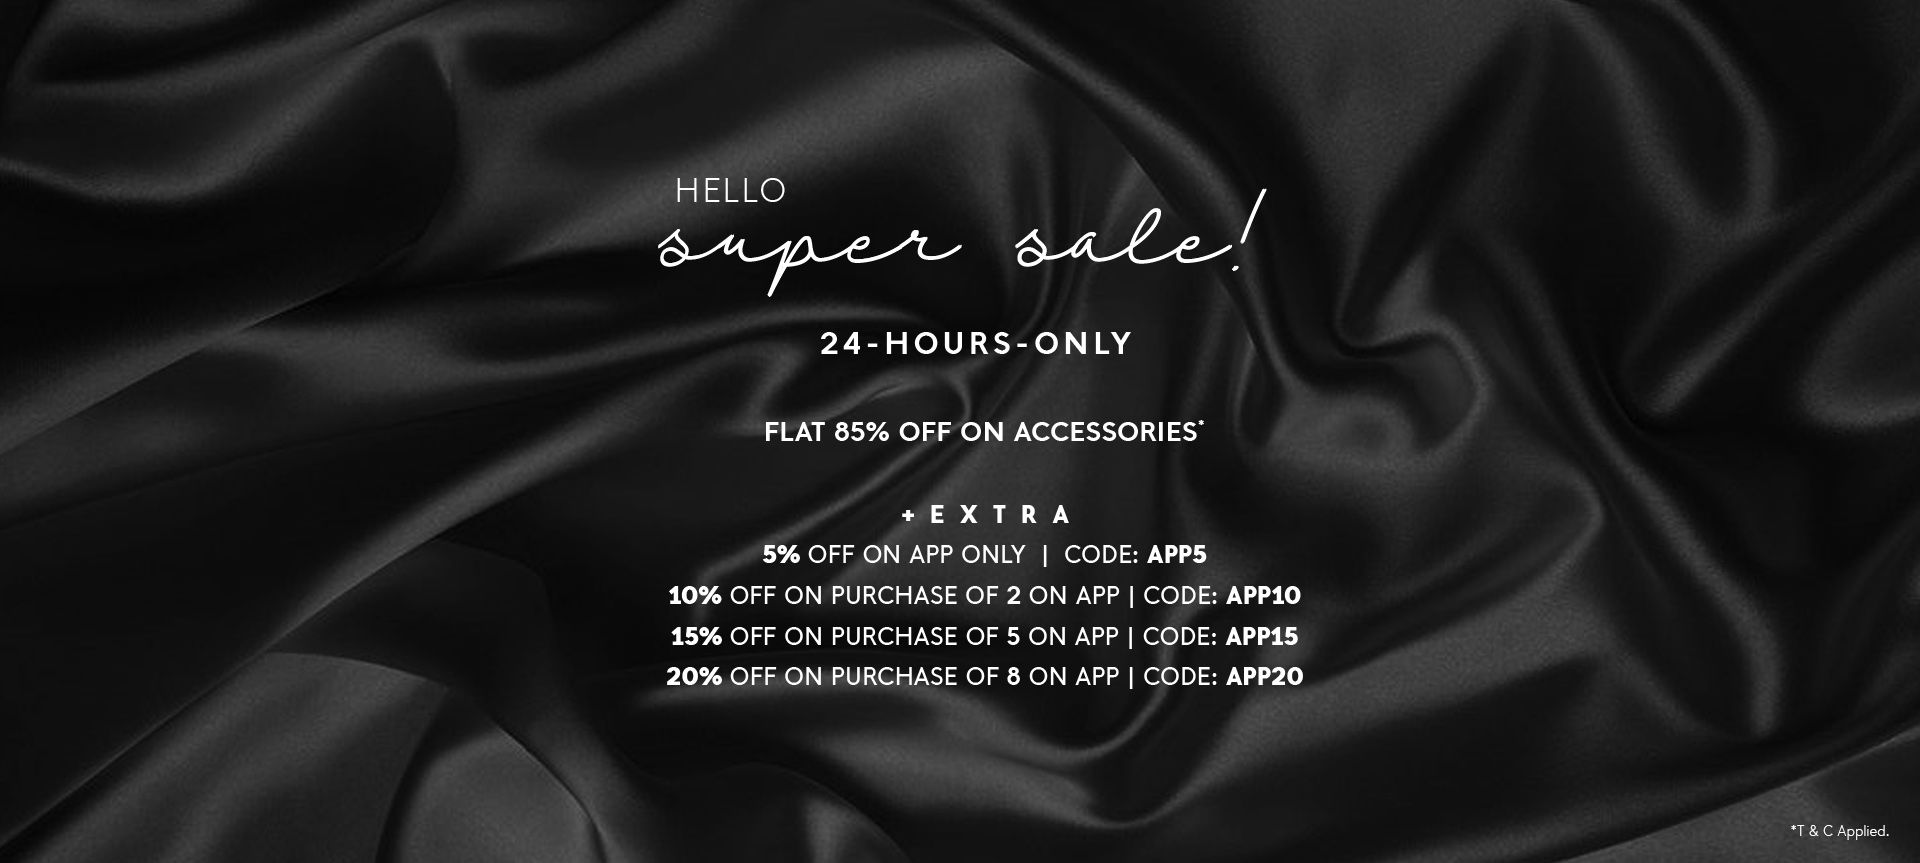 FLAT 85% OFF ON ACCESSORIES